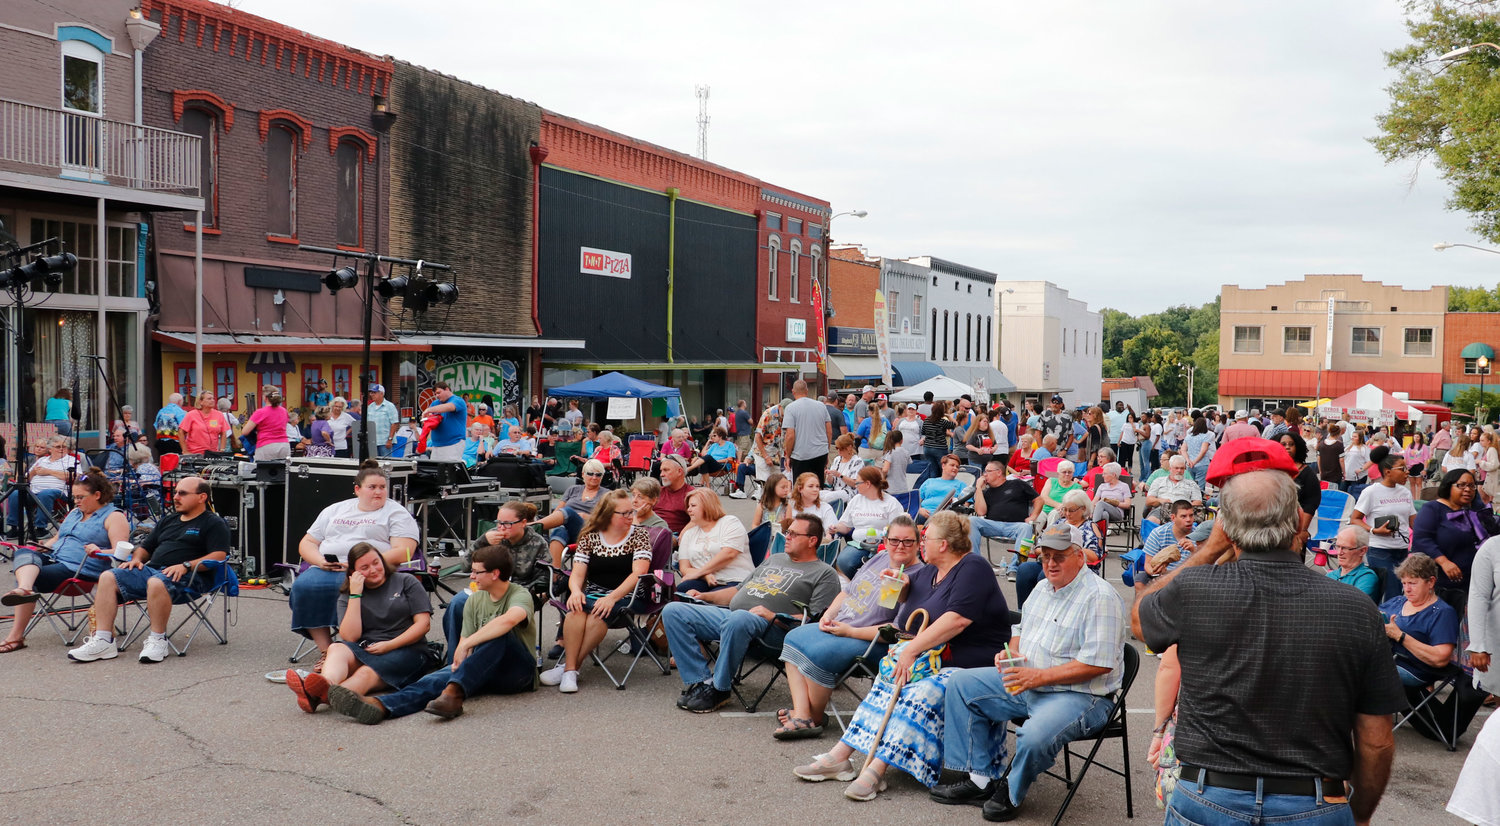 A large gathering of people enjoyed the evening entertainment along Broadway Street.